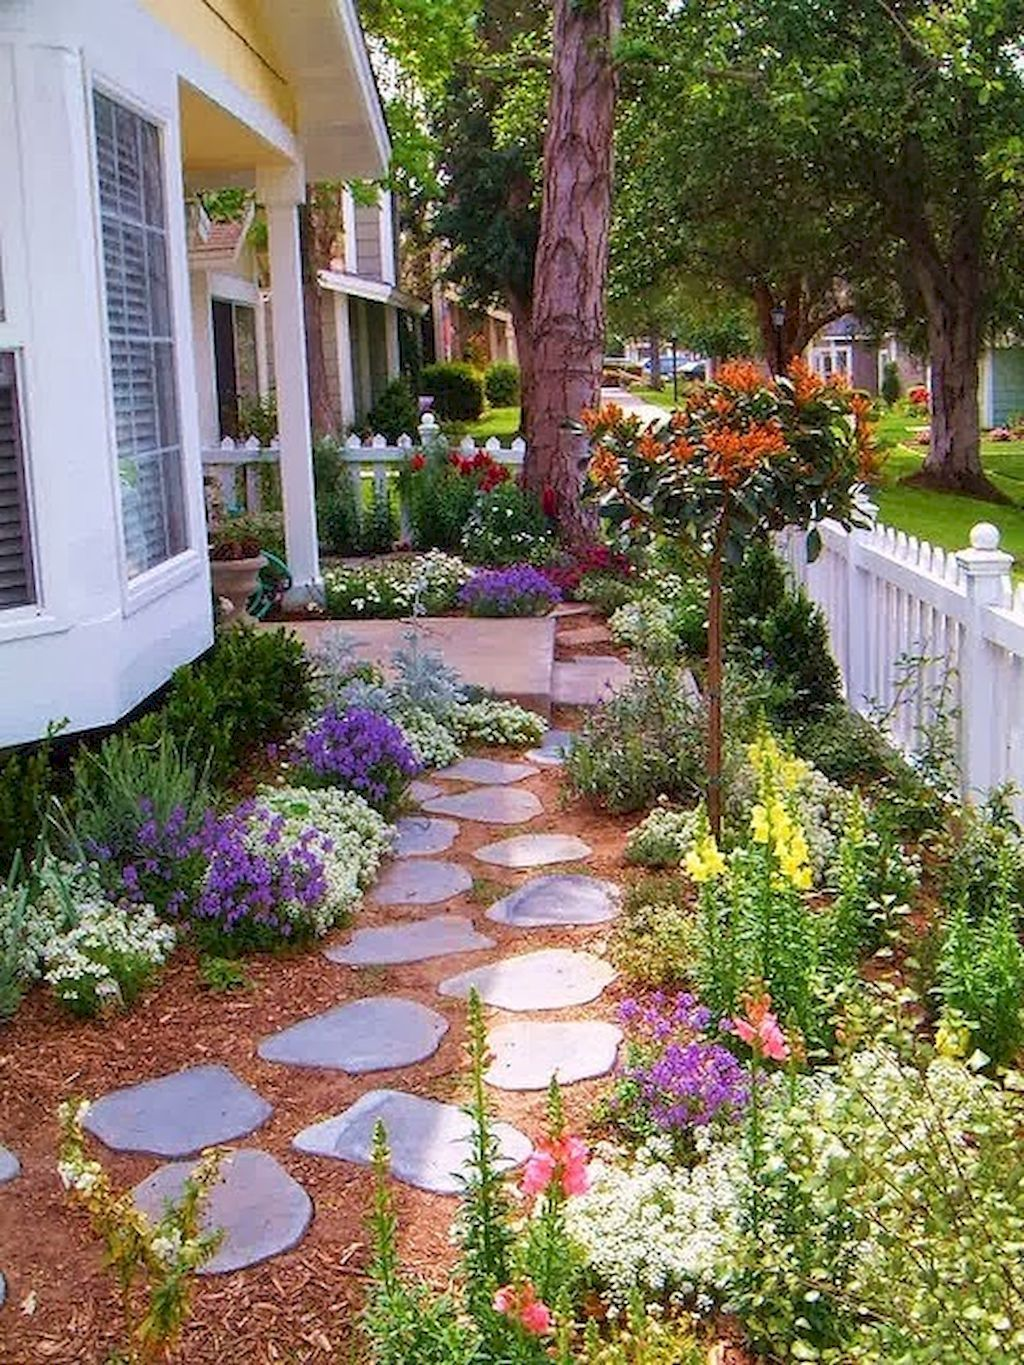 85 Affordable Front Yard Walkway Landscaping Ideas | Small ... on Small Walkway Ideas id=38960